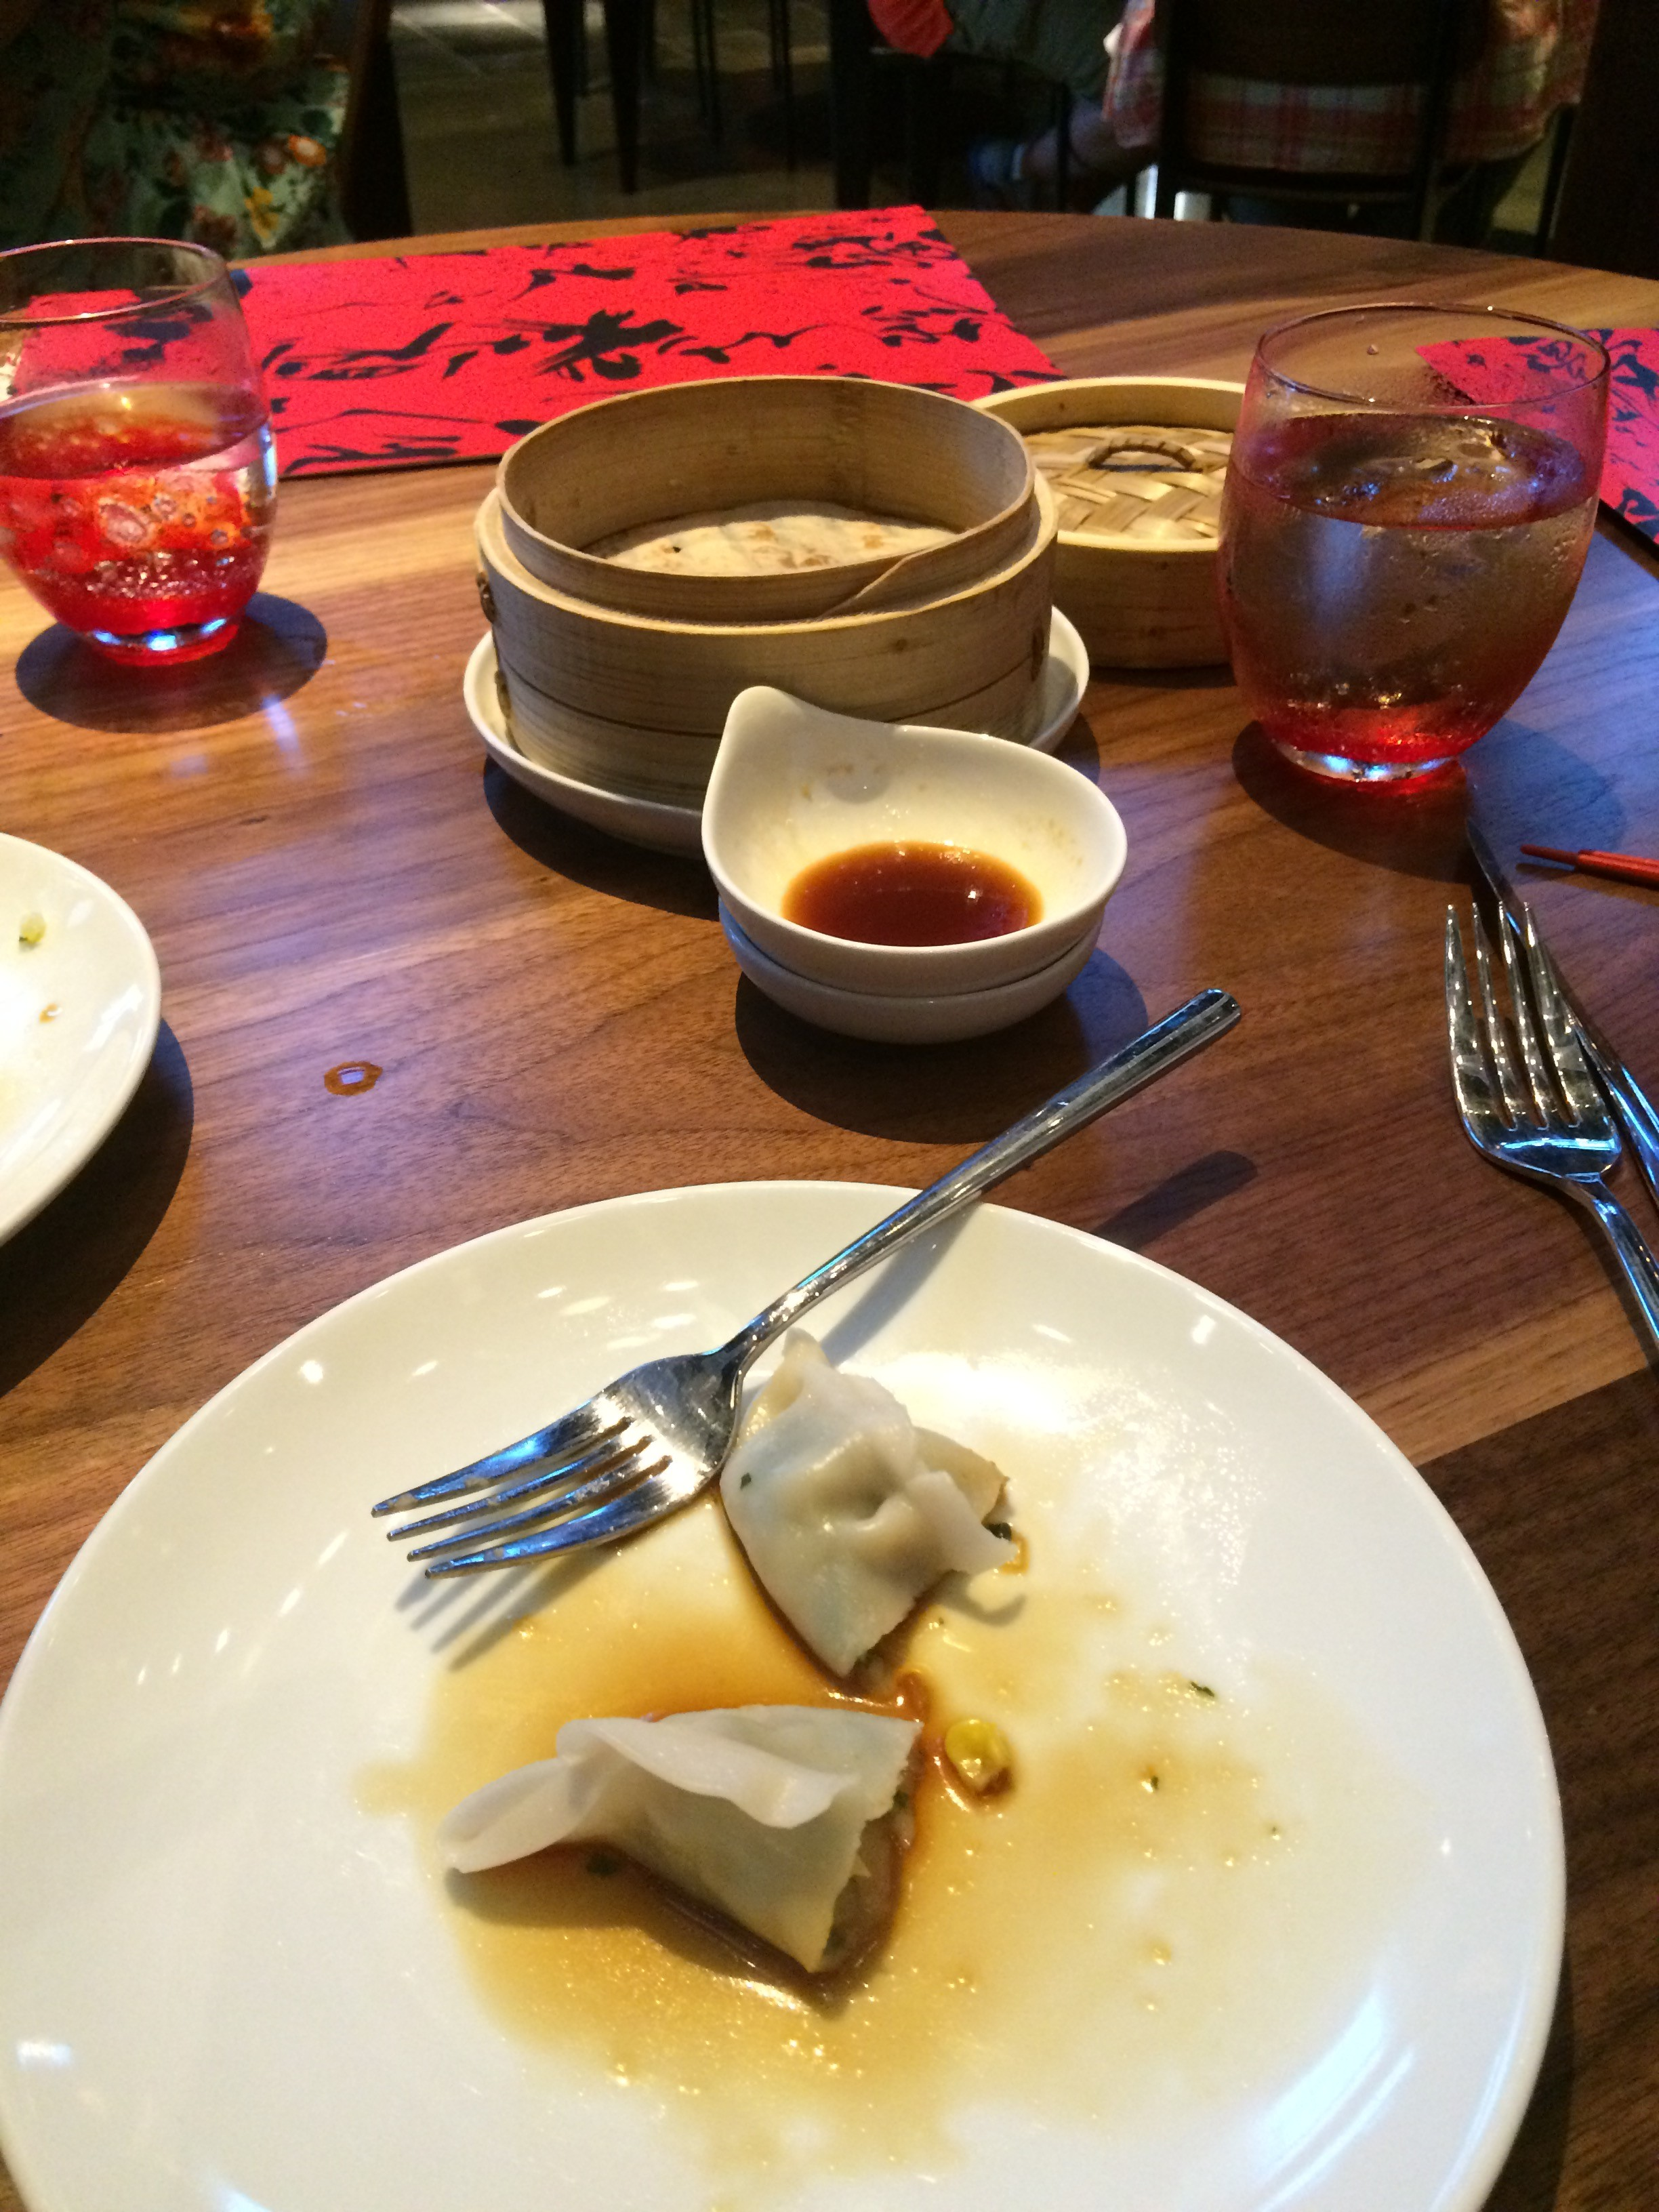 These Vege Dumplings never had a chance.... Yum!